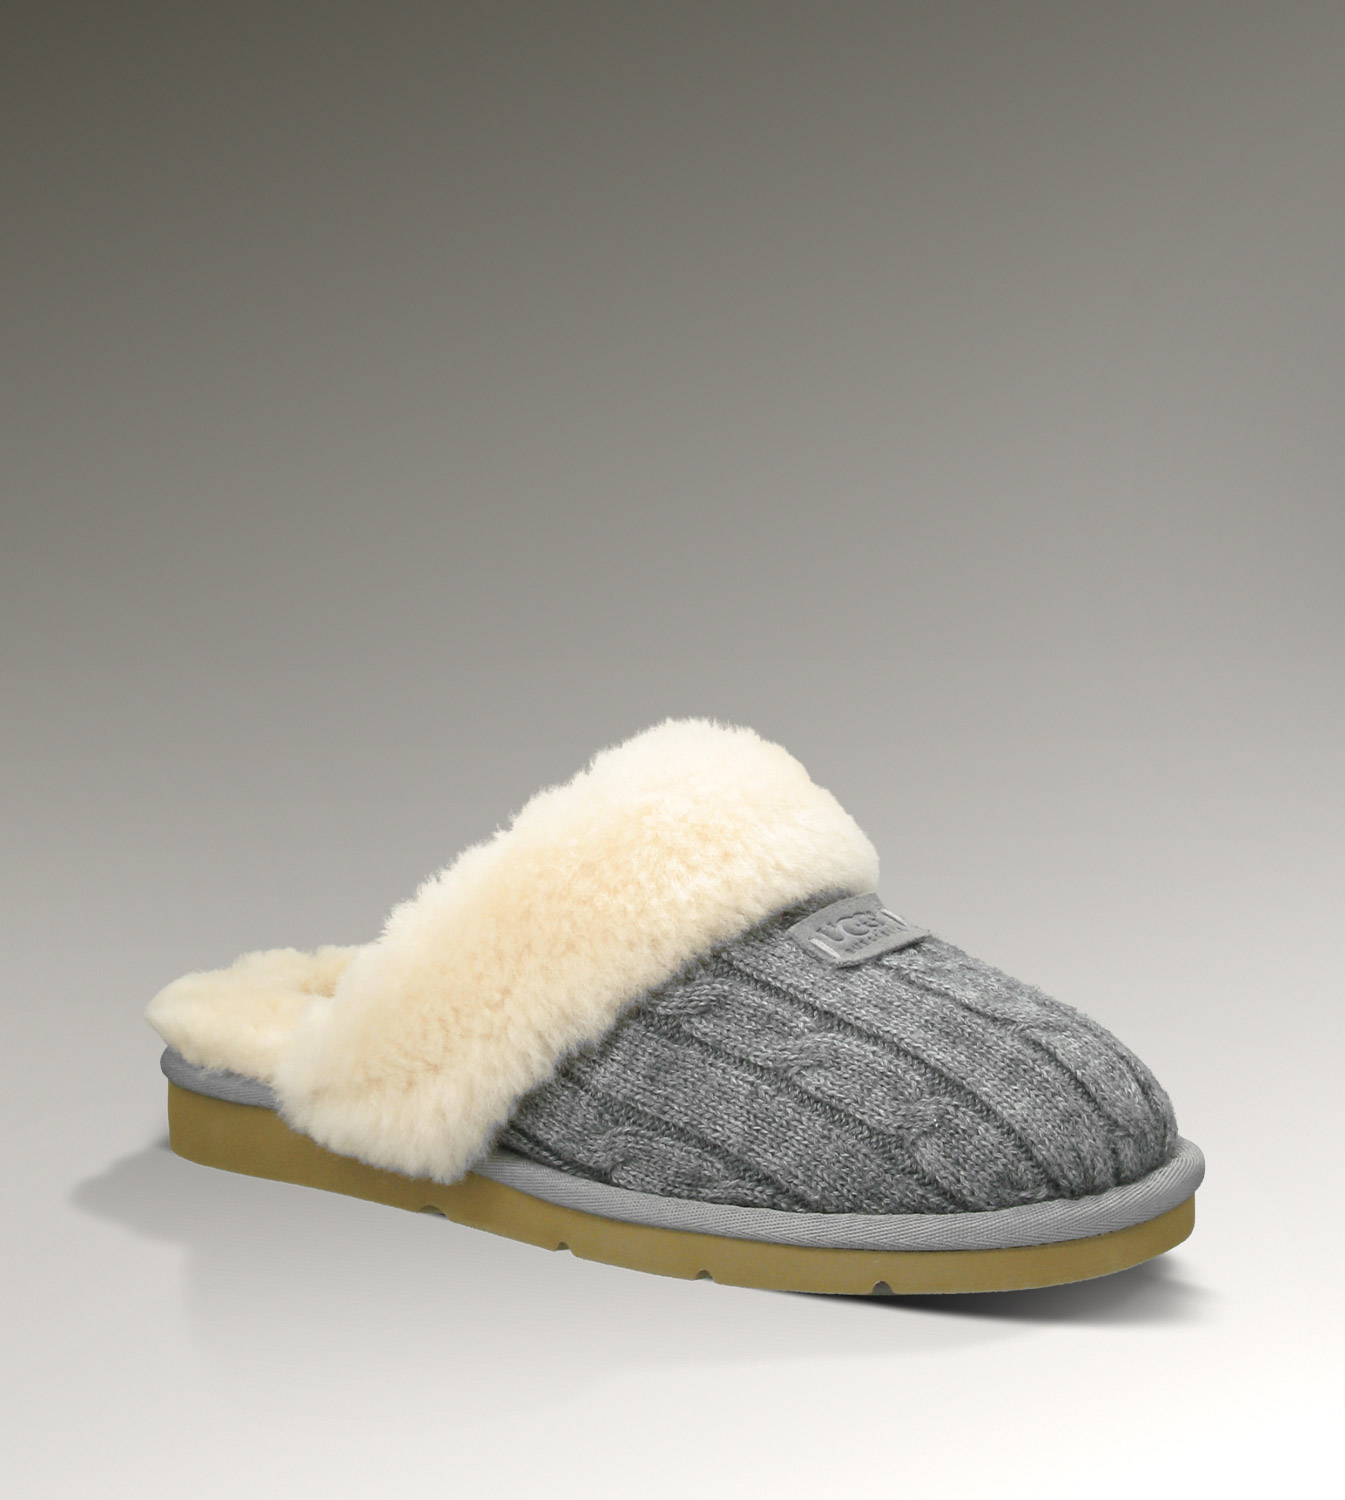 0cd1b9ad4 UGG® Cozy Knit Slippers for Women | Sweater Knit Slippers at  UGGAustralia.com